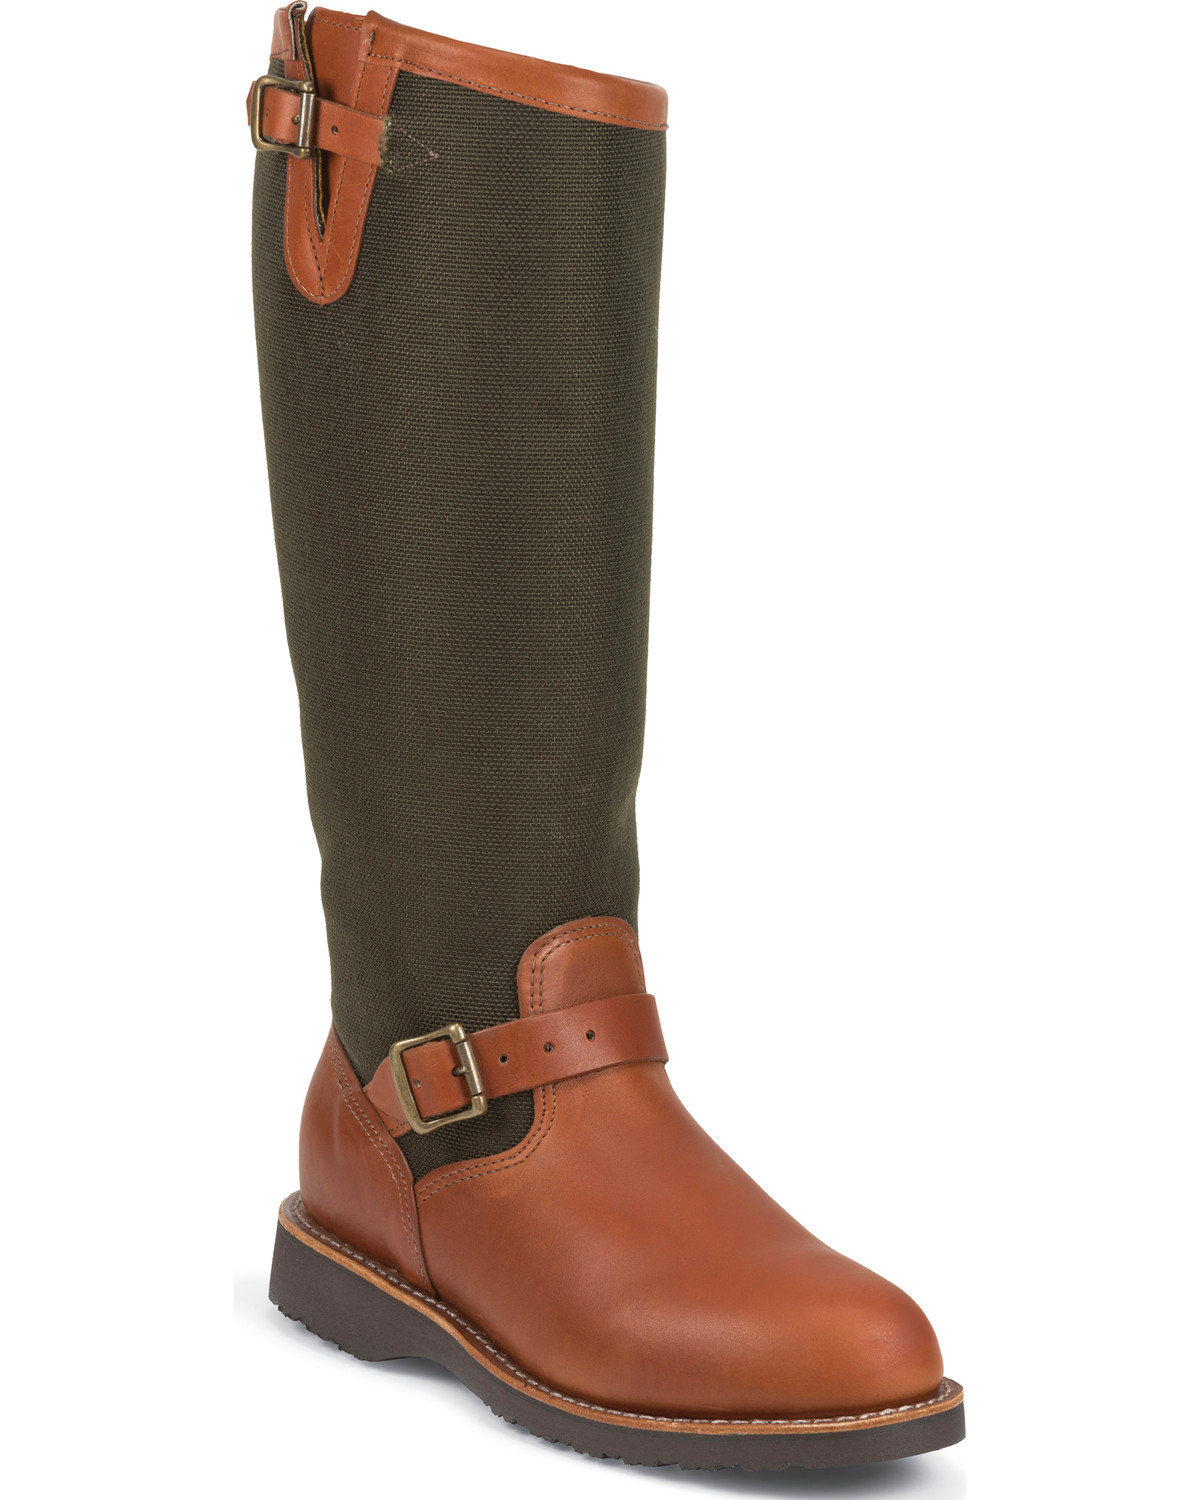 chippewa womens snake boots russet hi res